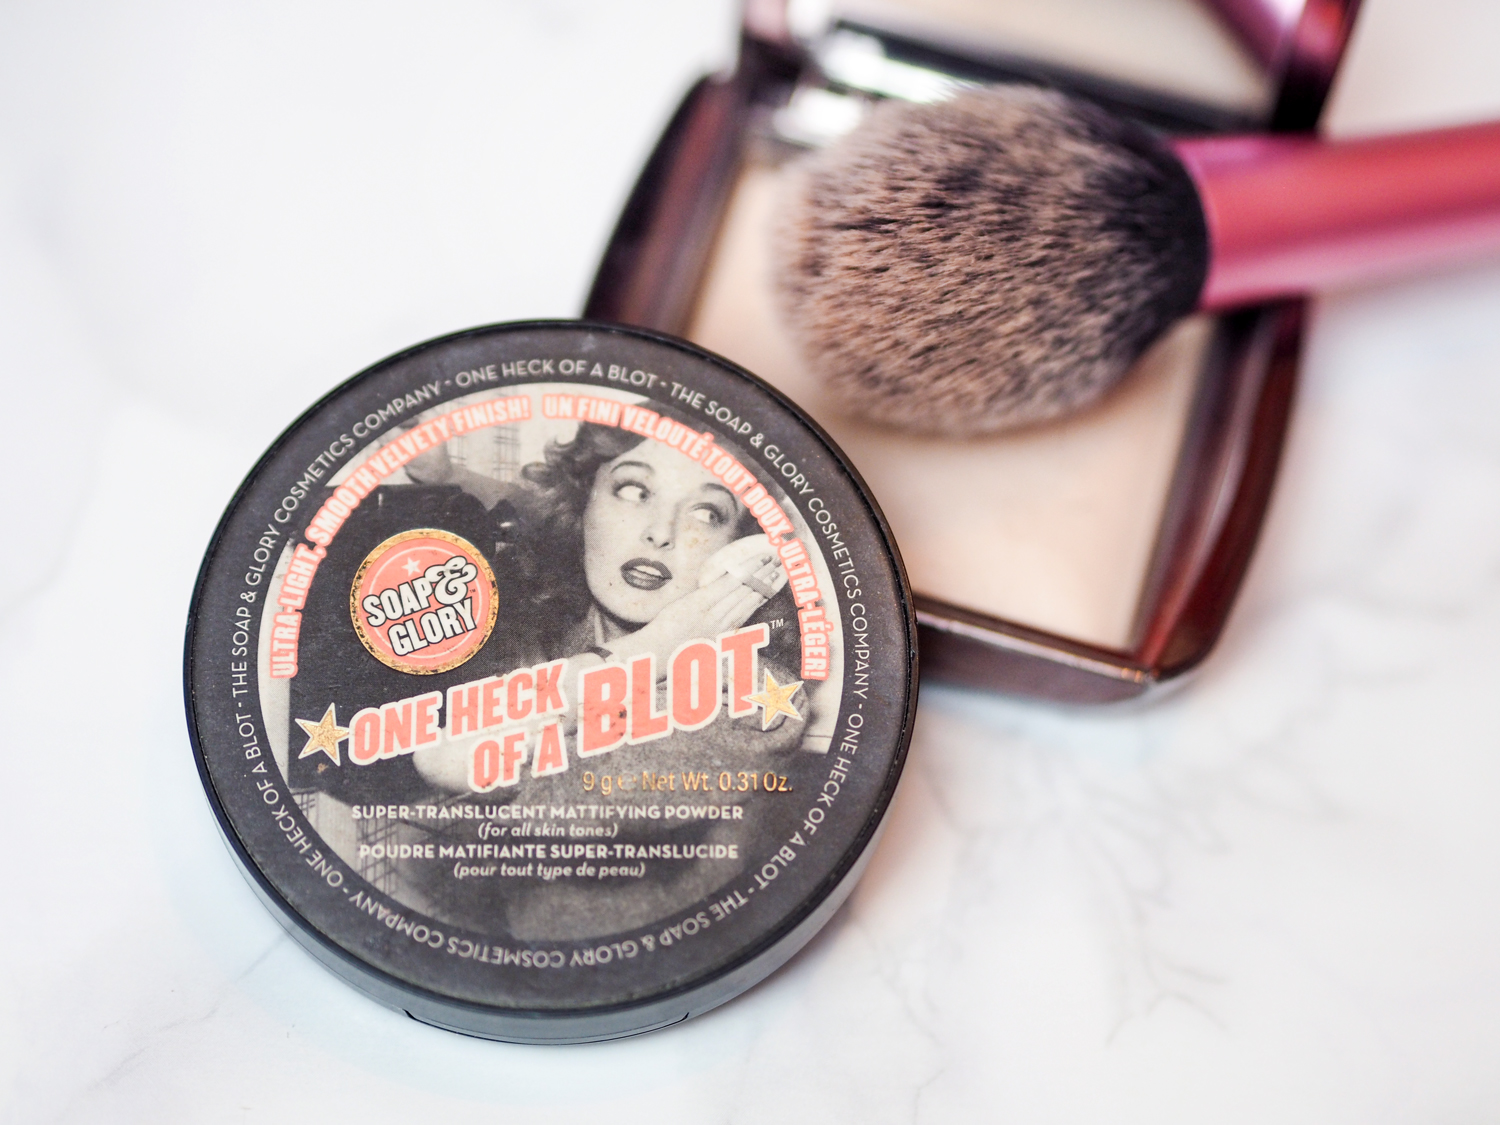 5 ways to set your makeup soap glory one heck of a blot